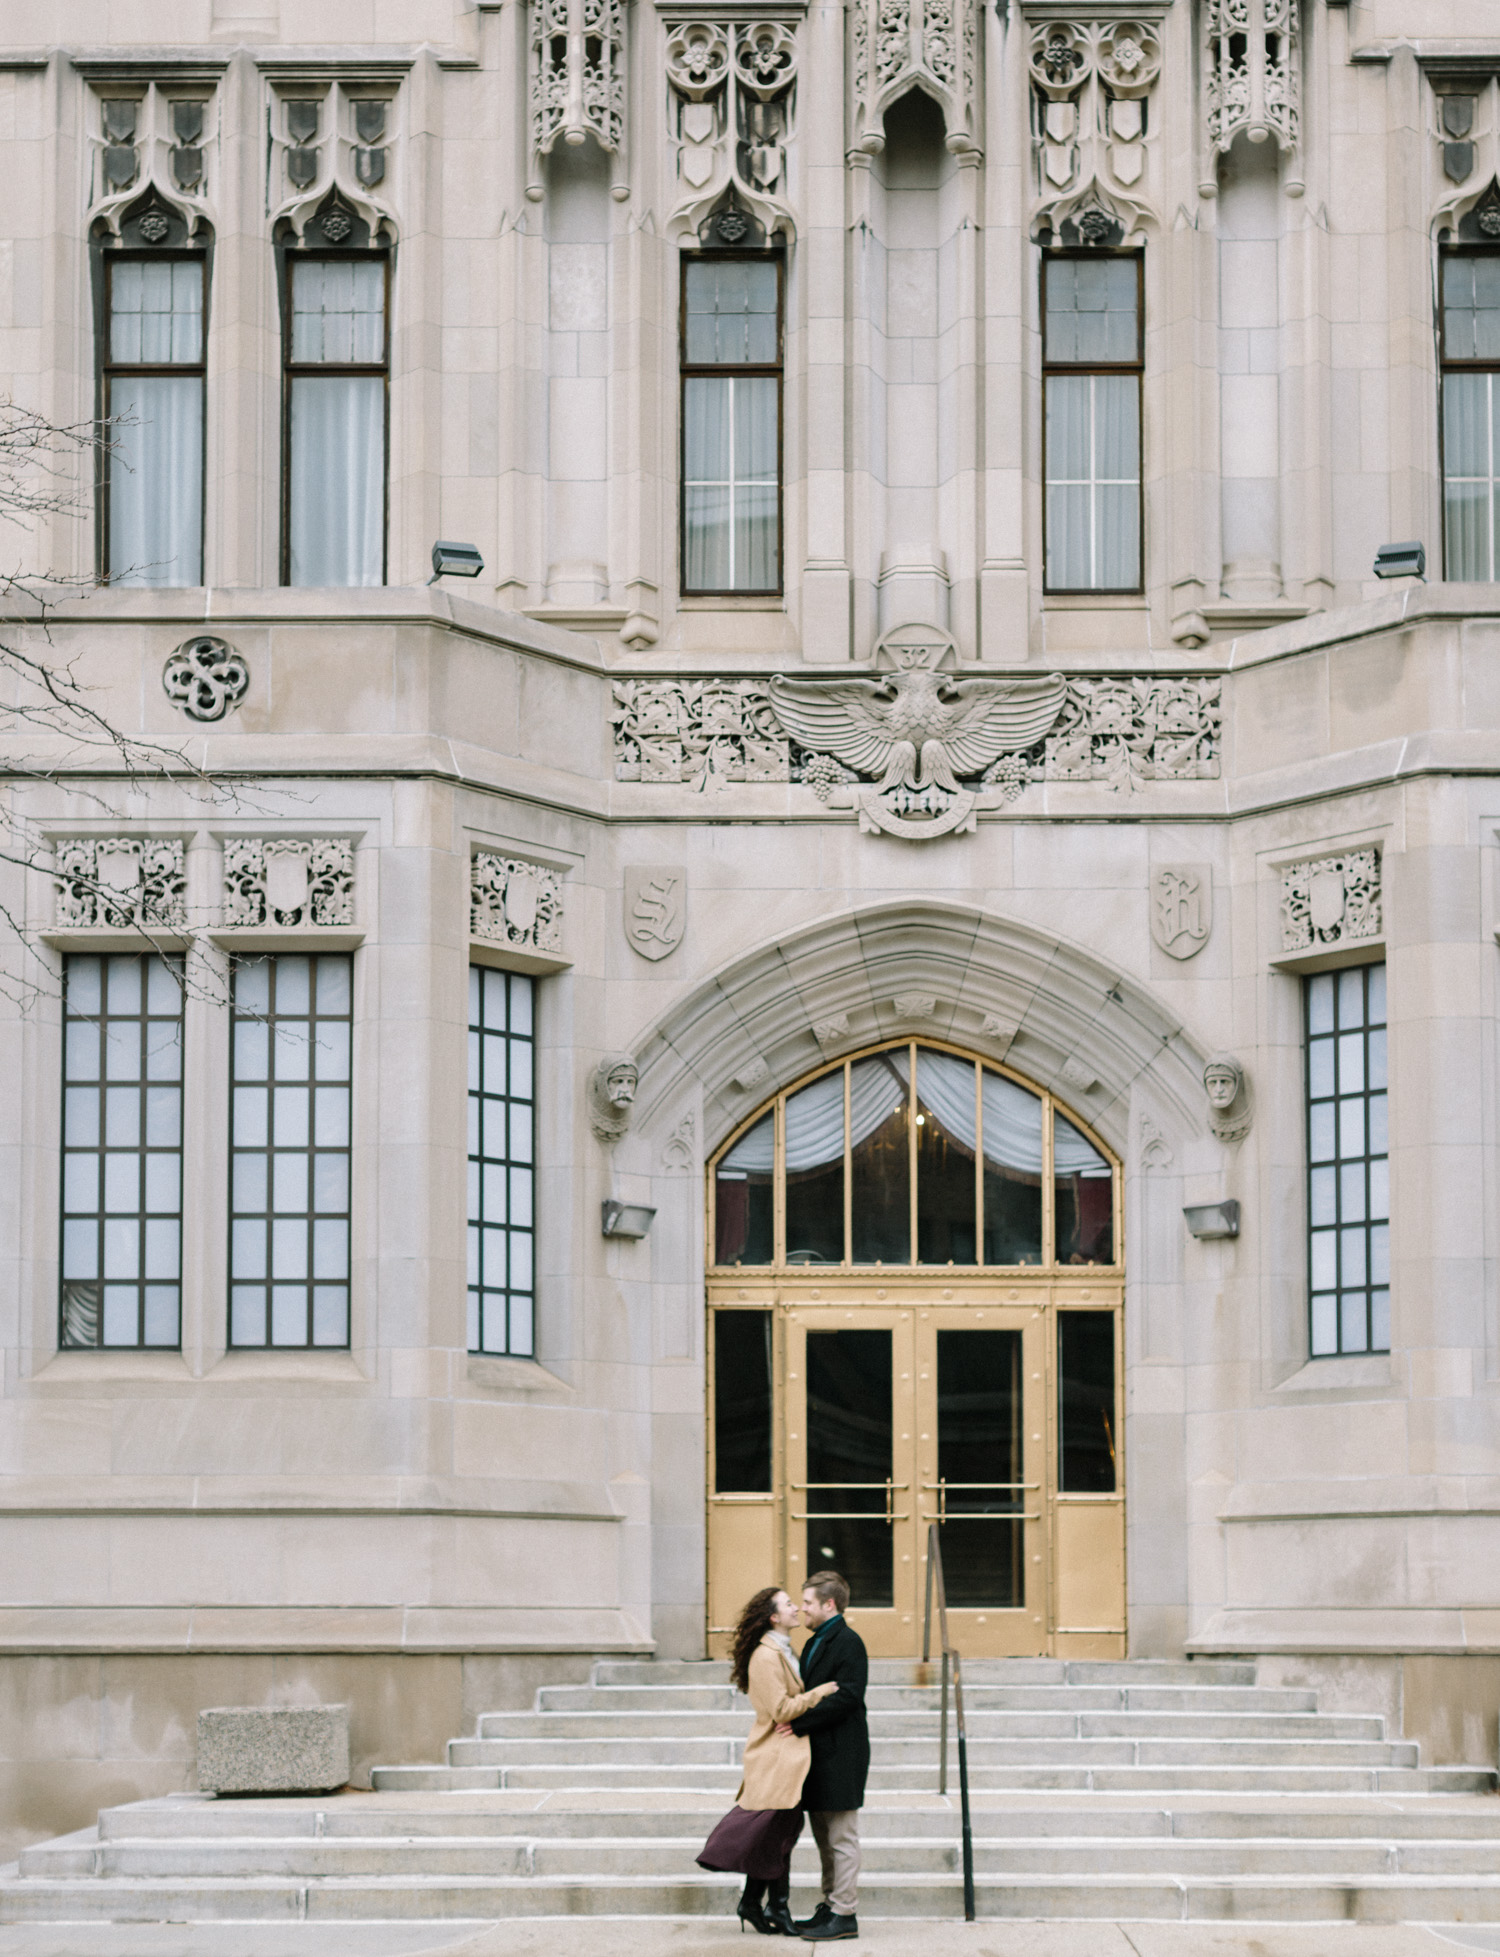 A couple embraces in front of the beautiful architecture of the Masonic temple in Detroit, Michigan